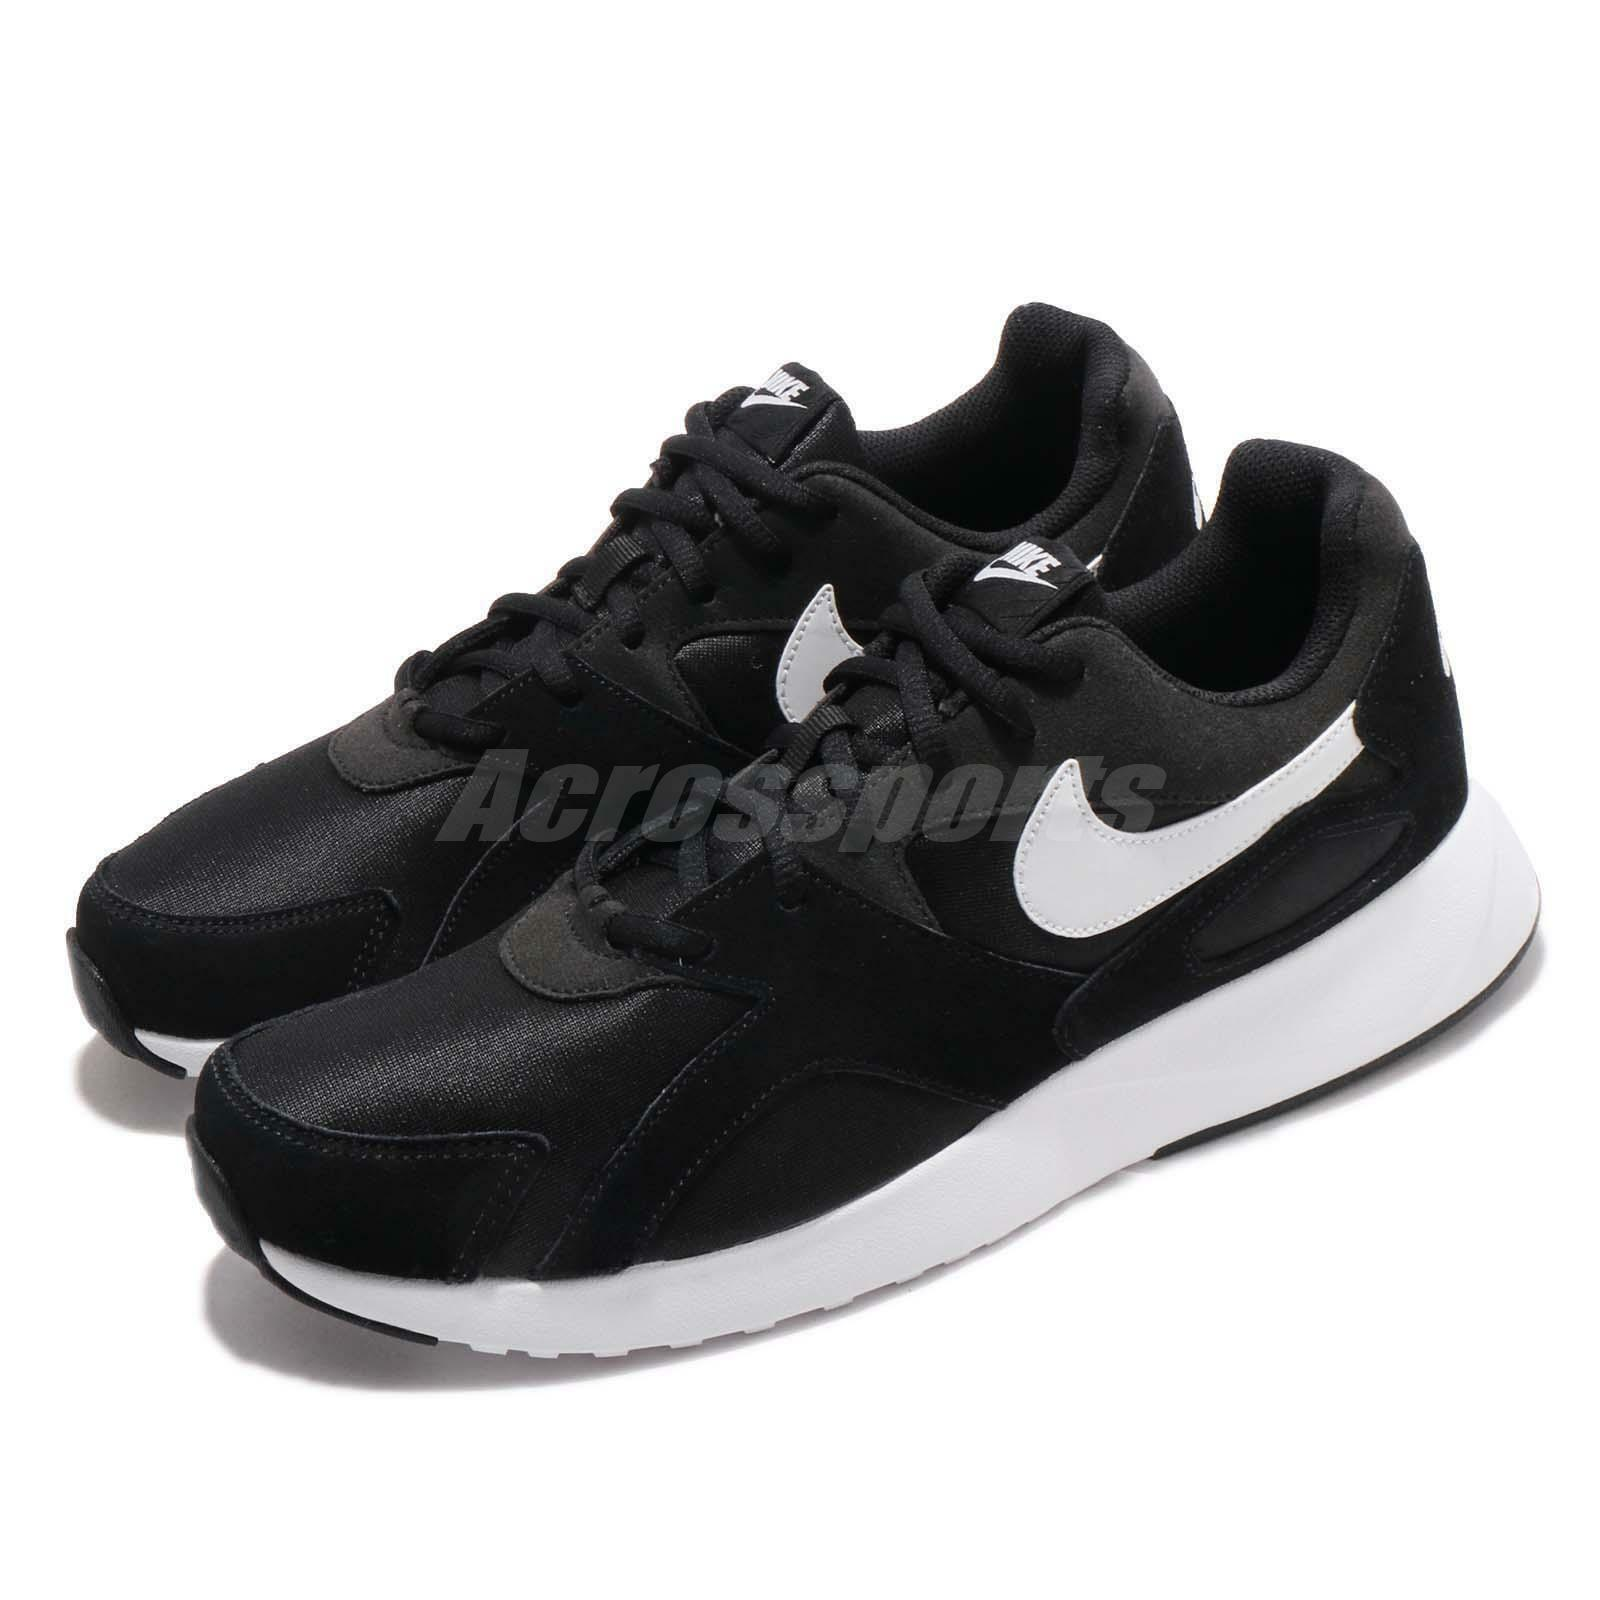 Nike Pantheos Black White Men Running Casual Lifestyle shoes Sneakers 916776-001